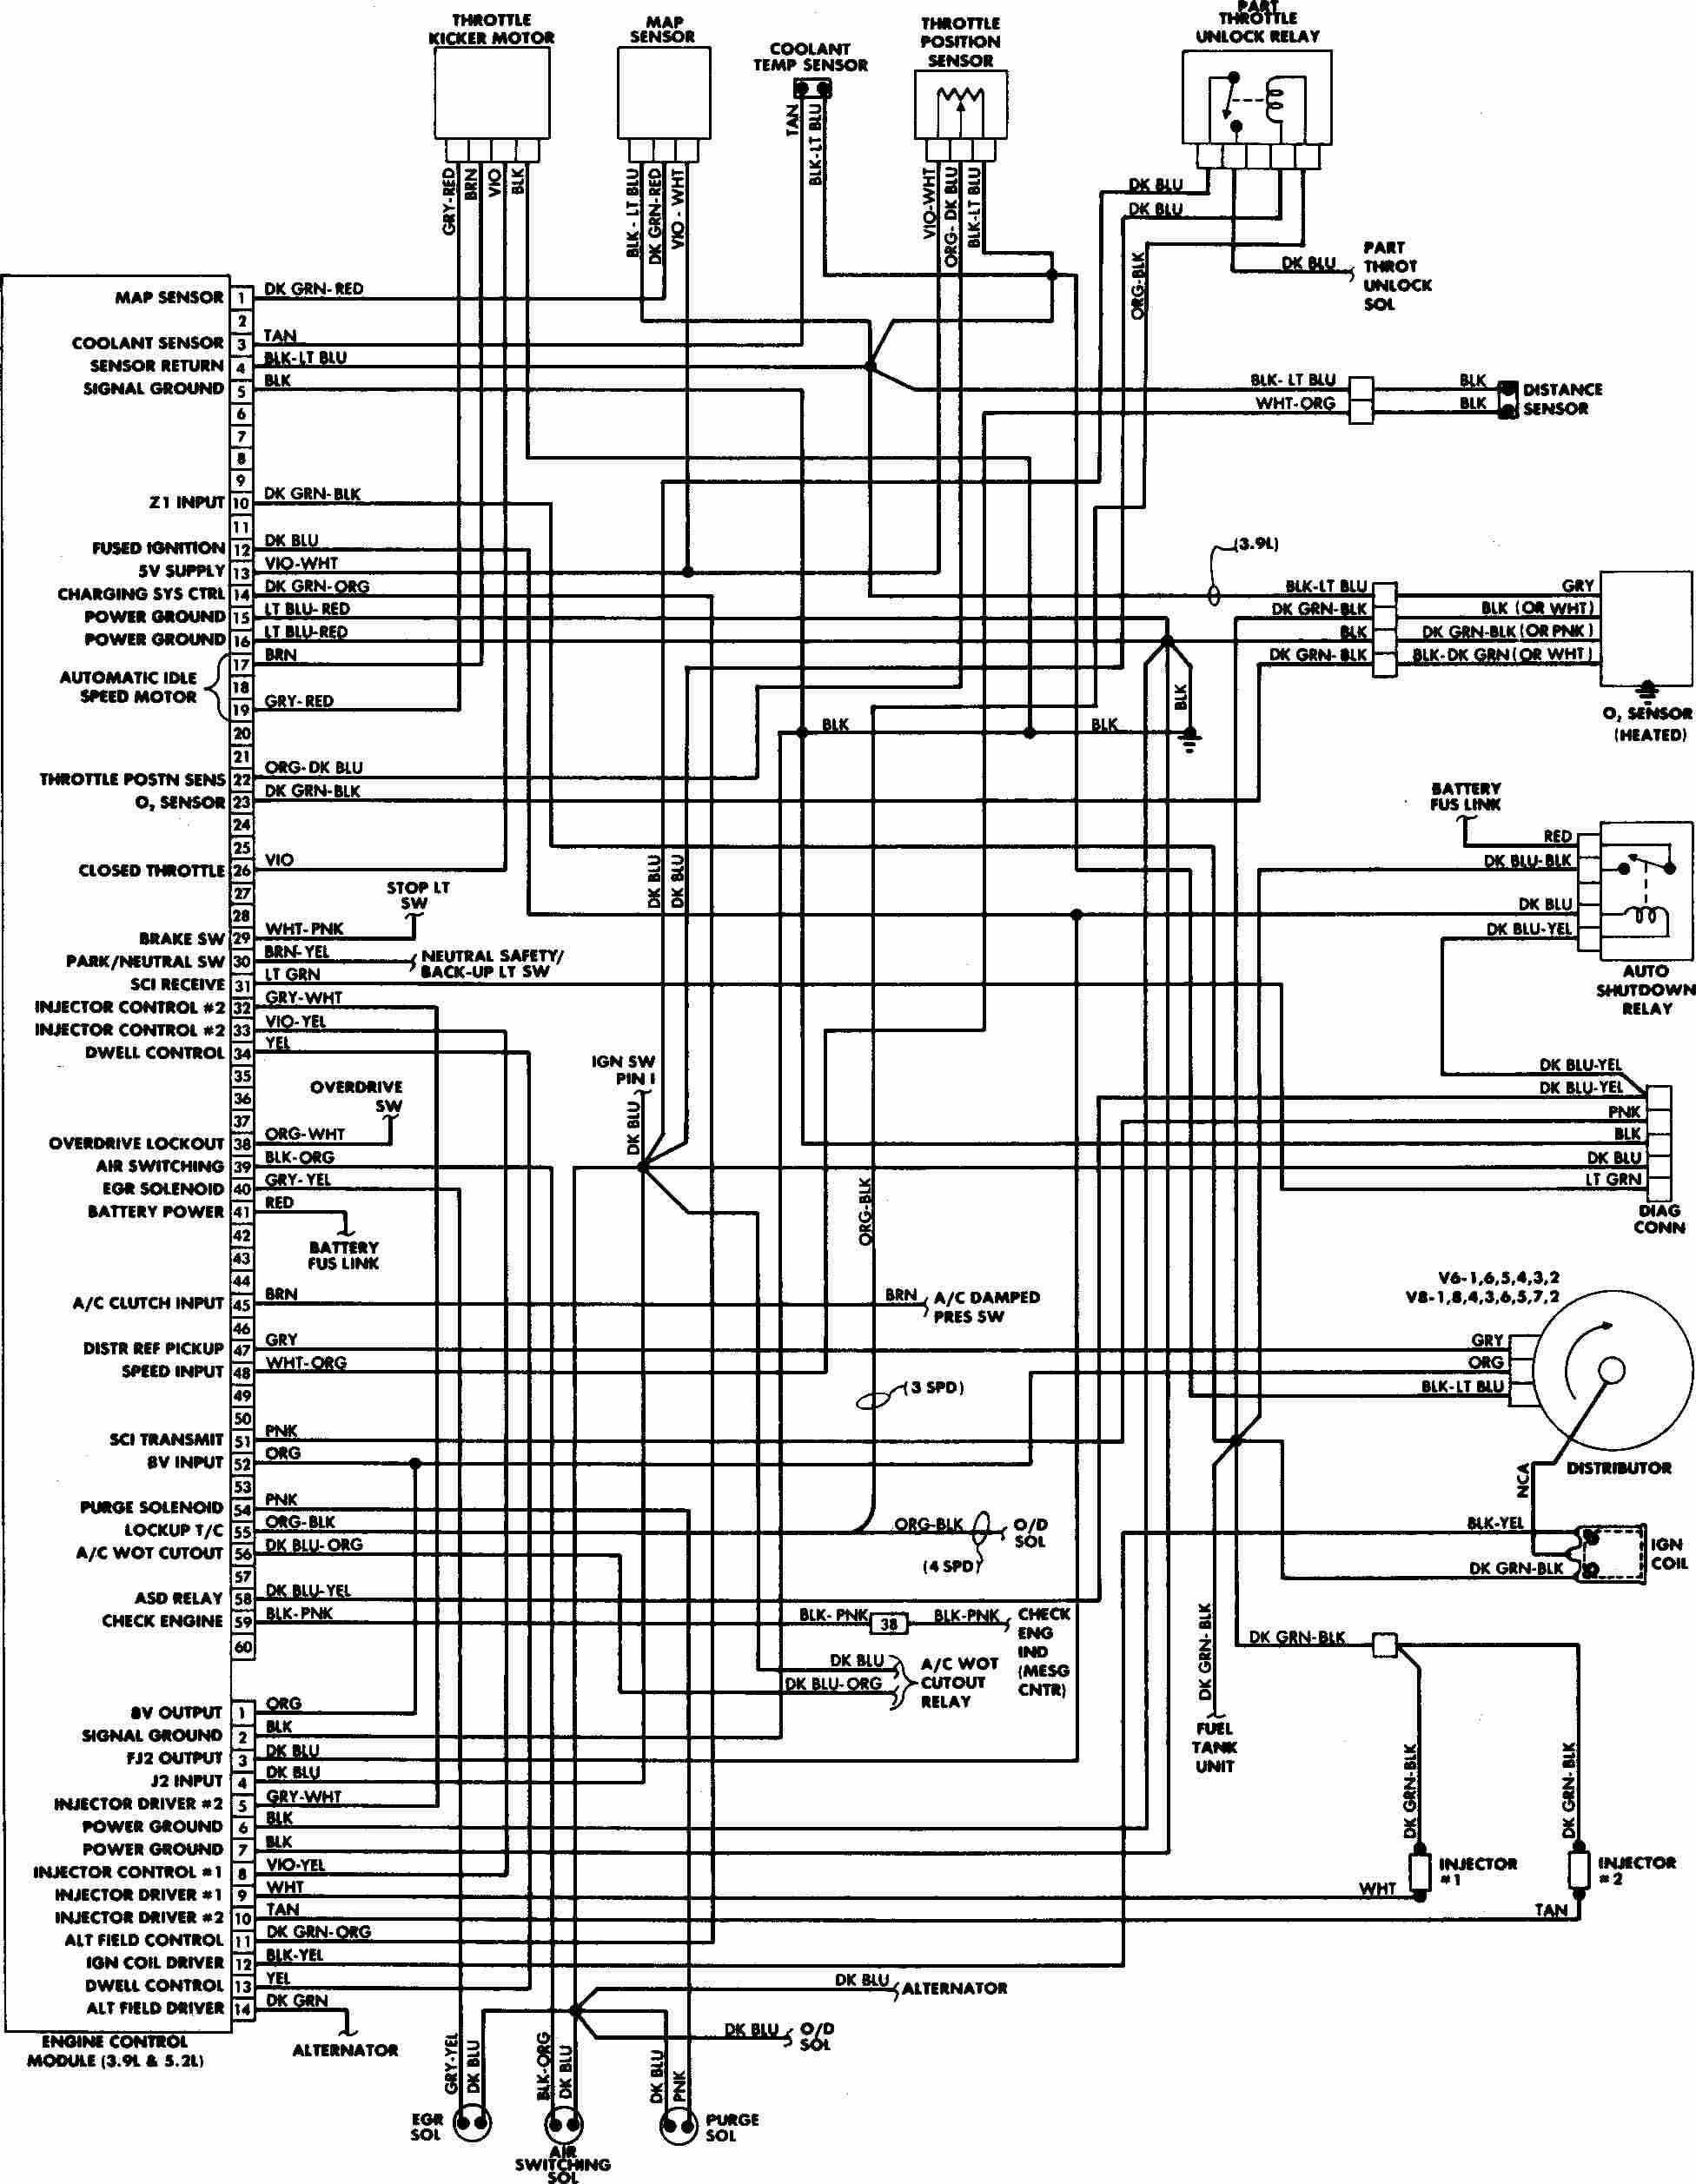 [DHAV_9290]  609A Dodge Neon Wiring Harness Diagram | Wiring Library | Dodge Neon Alternator Wiring Diagram |  | Wiring Library